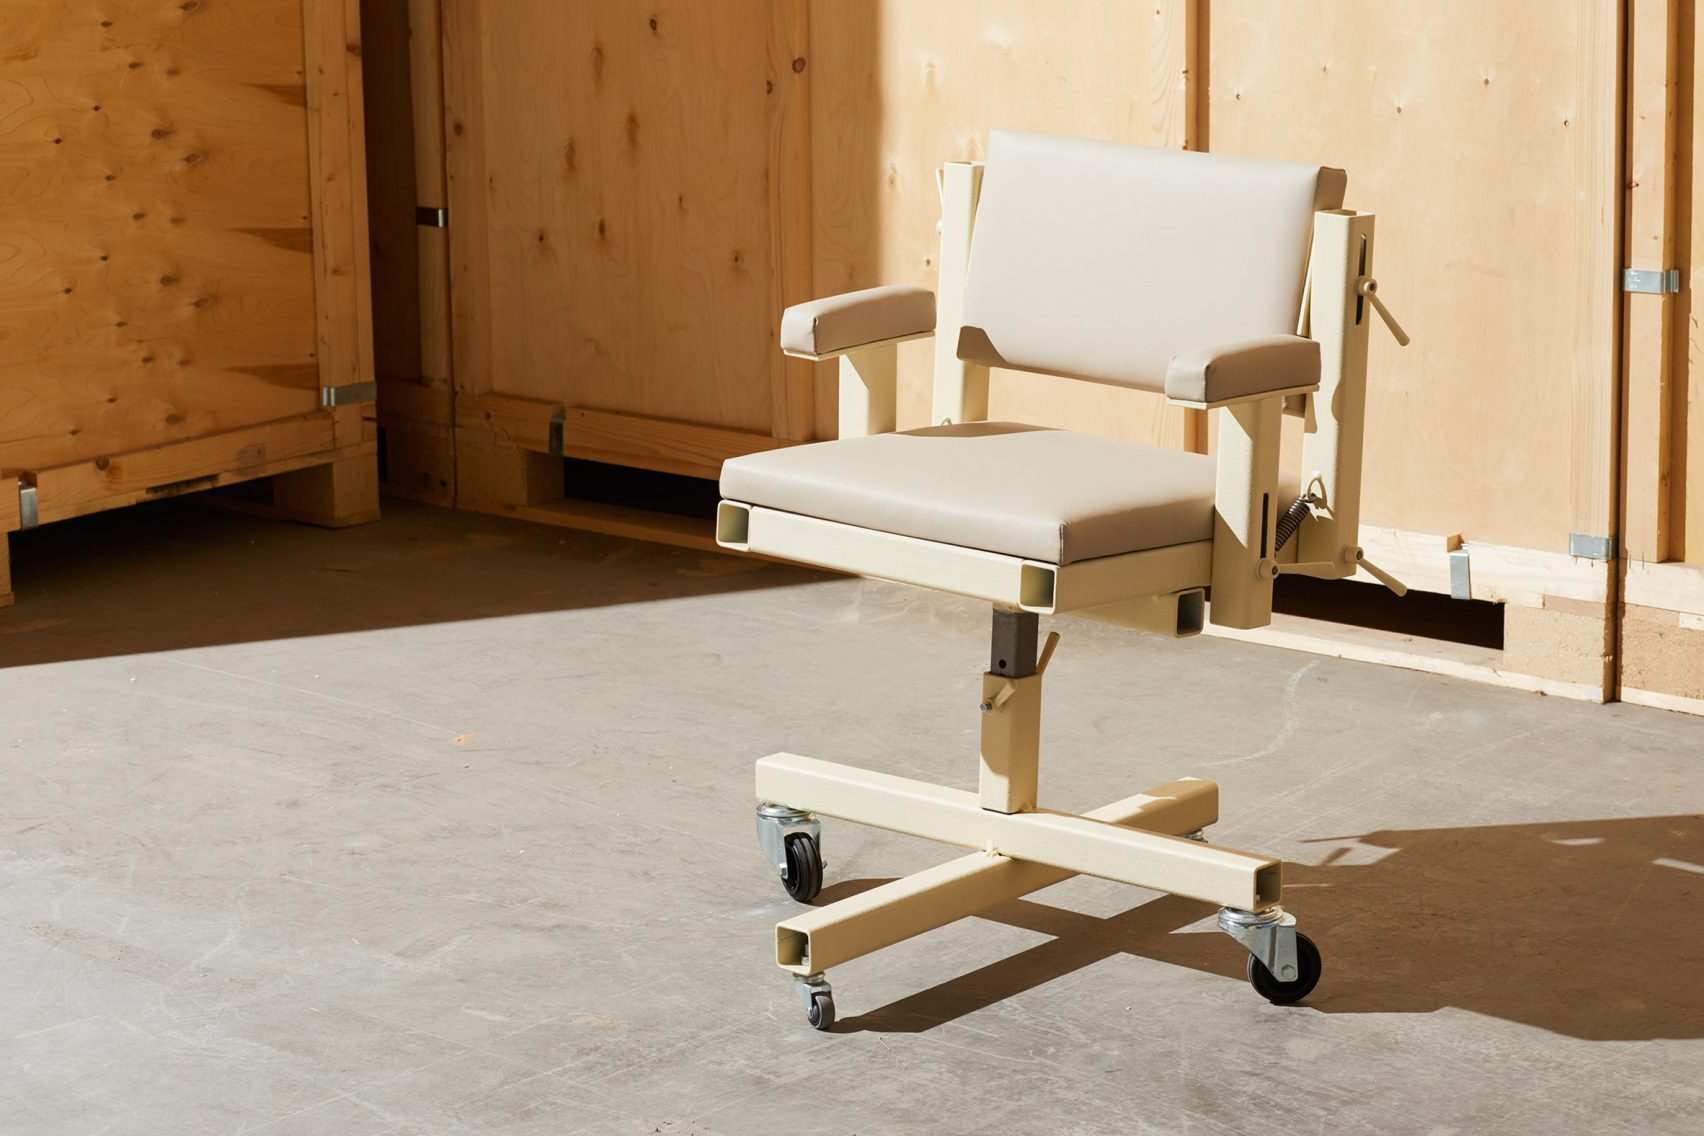 The Executive Chair pairs leather cushions with a hollow-section steel frame